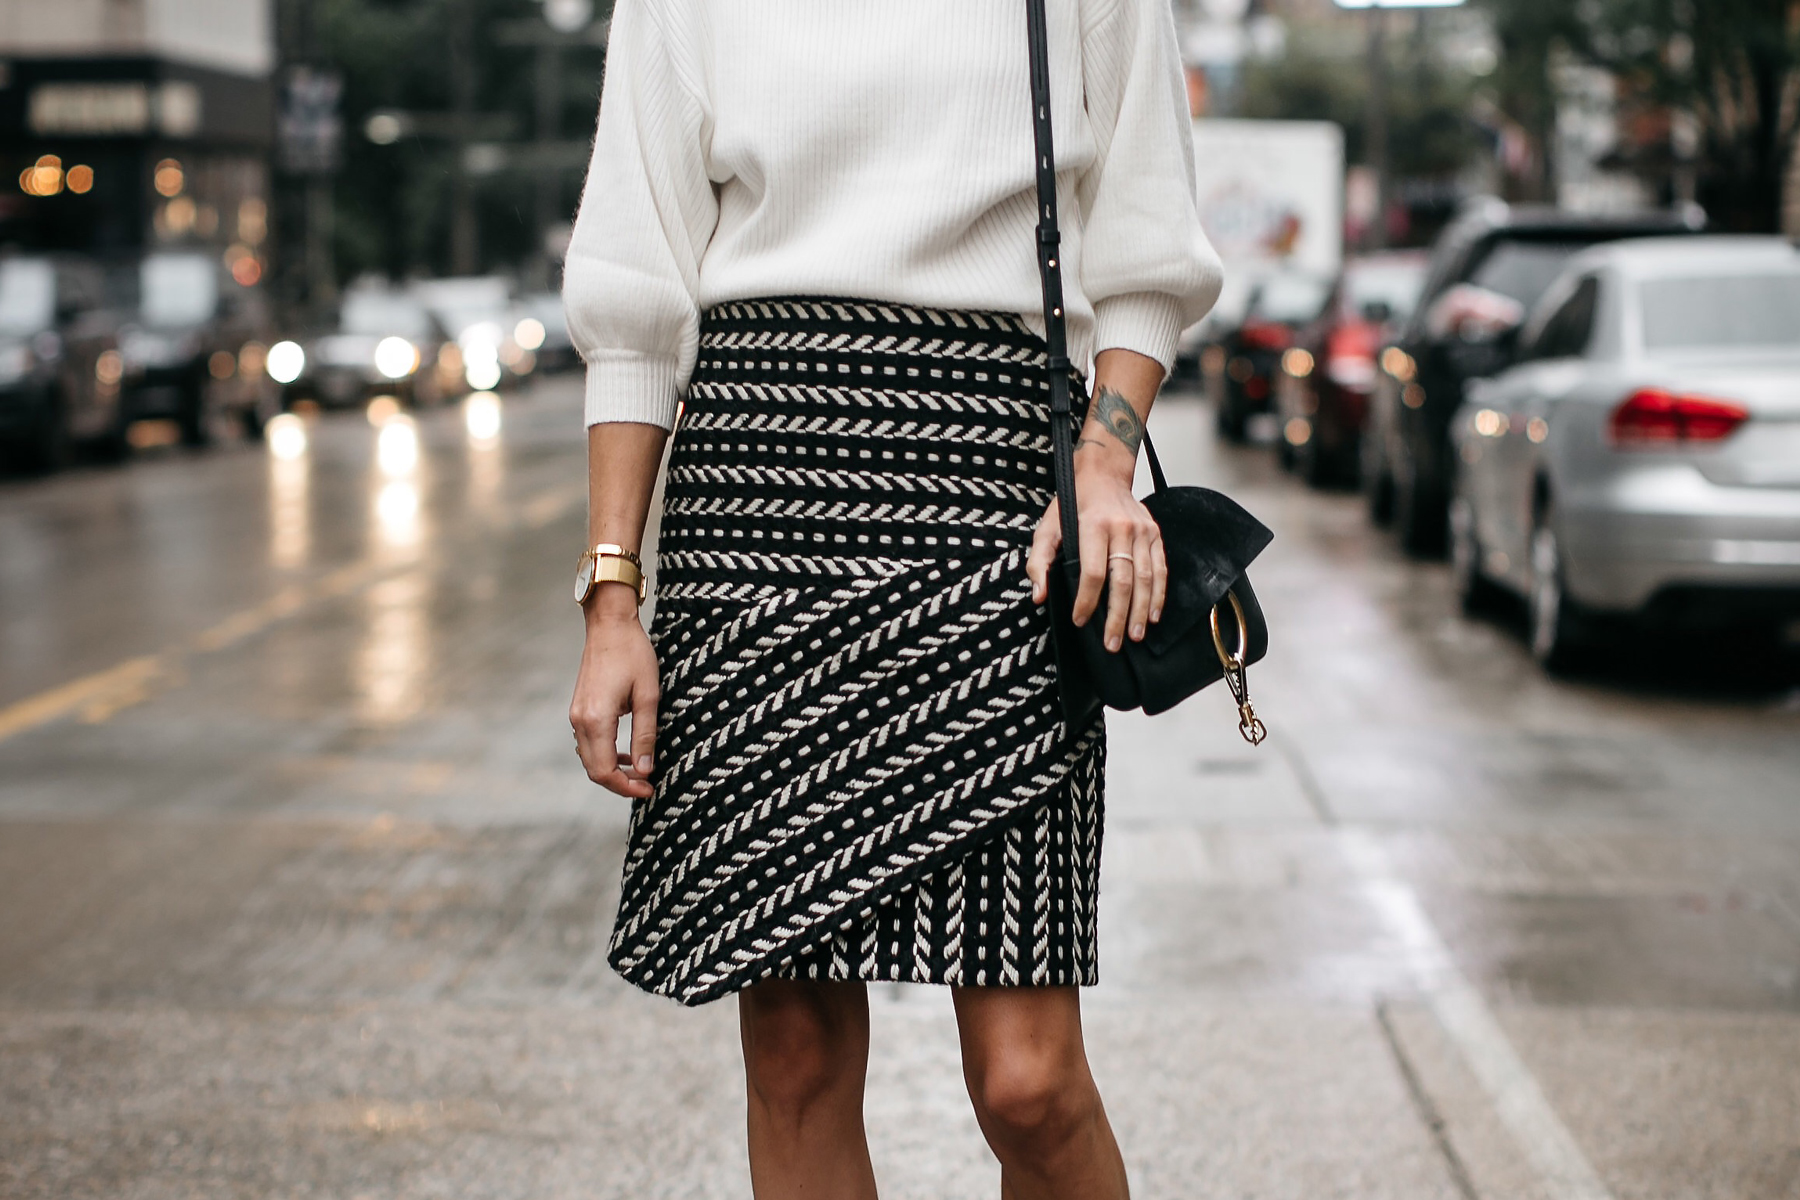 Fashion Jackson White Sweater Rachel Parcell Black and White Jacquard Skirt Chloe Faye Handbag